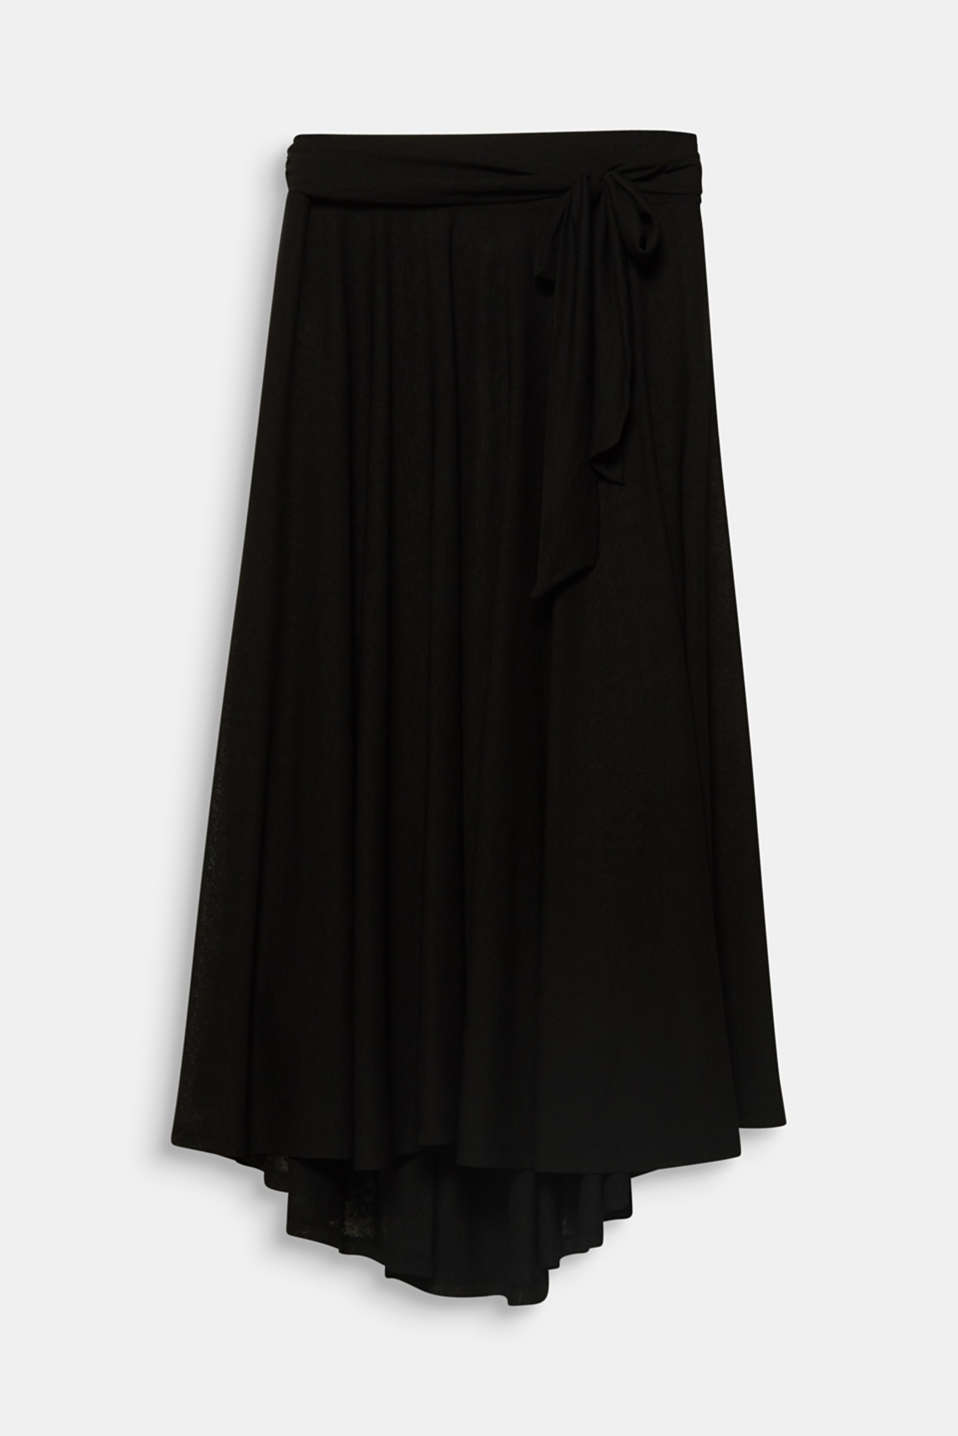 CURVY A-line jersey skirt, BLACK, detail image number 6